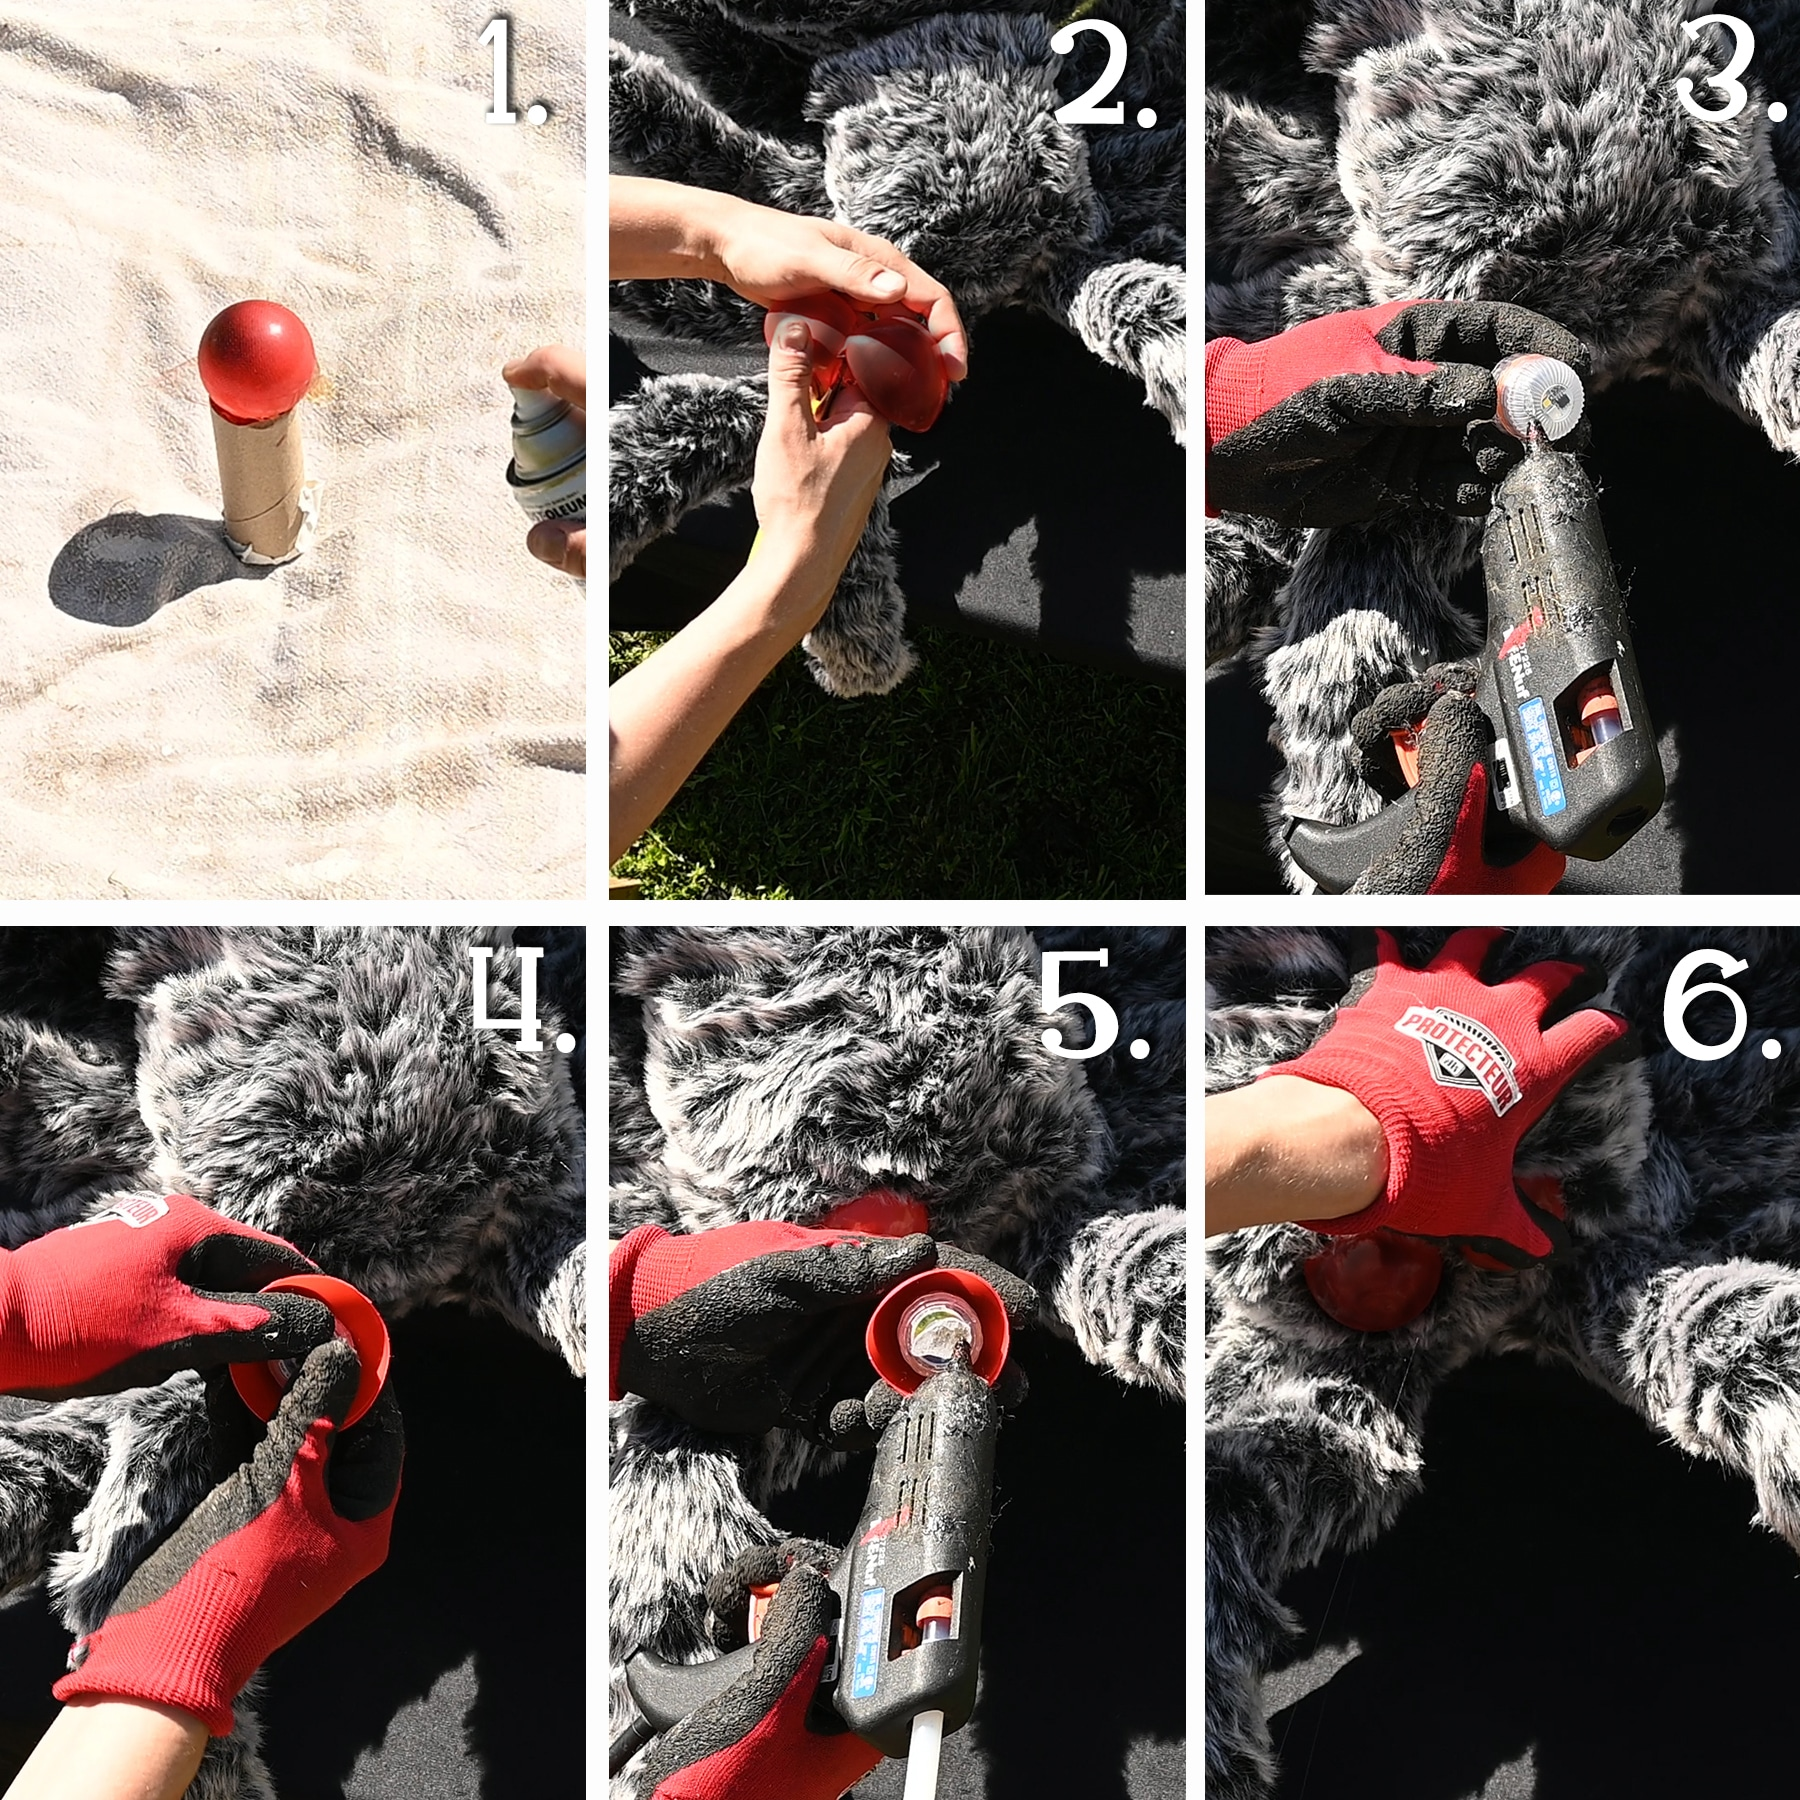 A six panel photo showing how to paint the round red balls to turn them into spider eyes.  The panel also shows how the lights are attached to the eyes to make them glow.